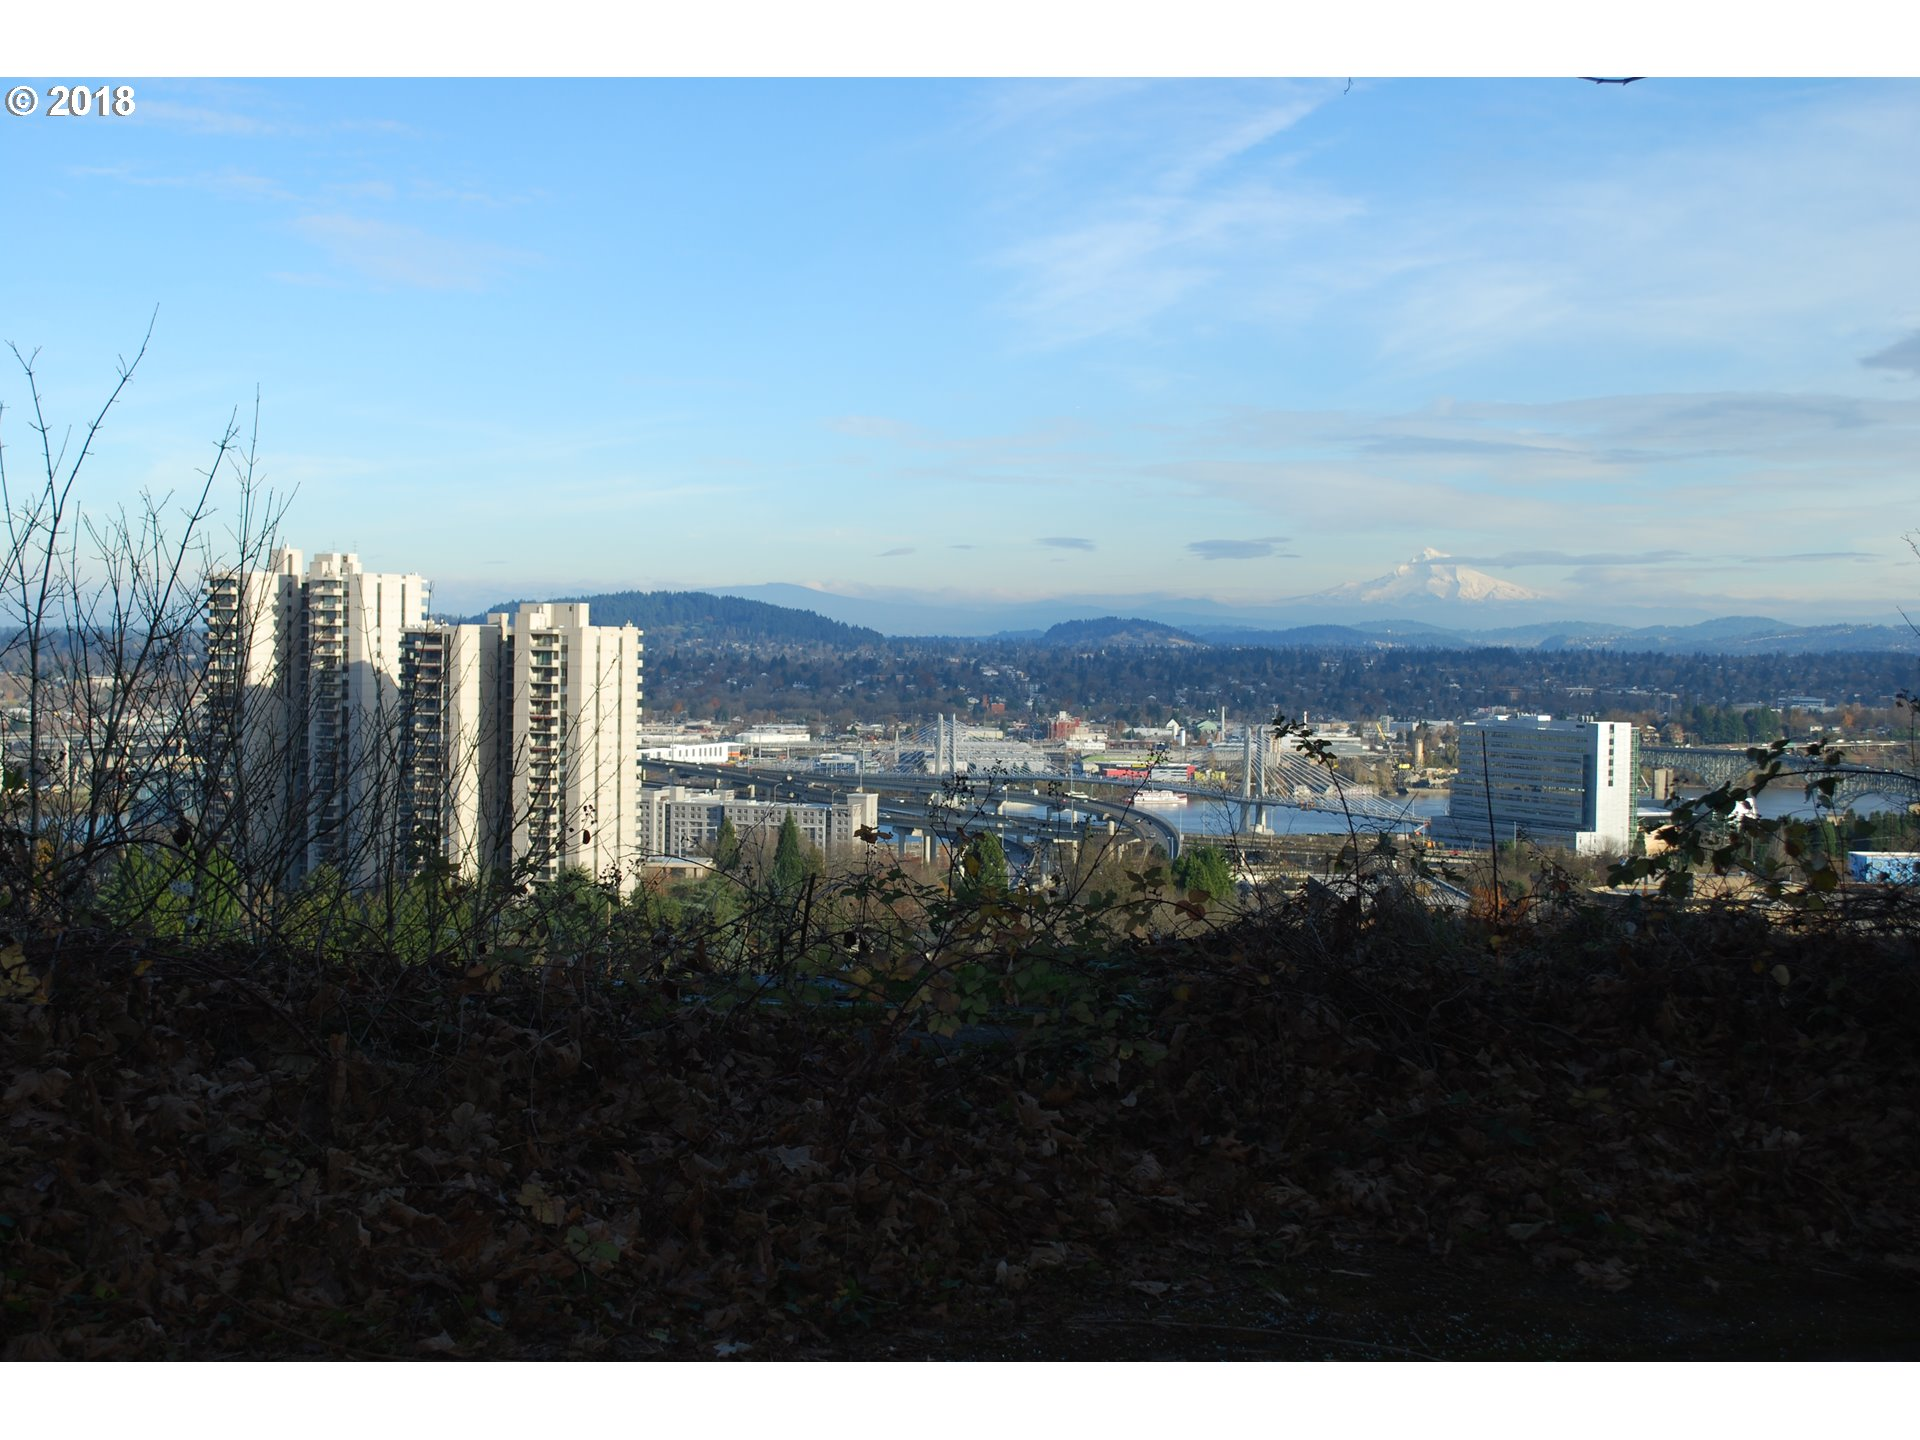 Developers/builders. Fantastic opportunity close in with breathaking views of Mt. Hood and city. Proximity to PSU, OHSU, UnderAmour, and downtown with easy highway access. Schematics for 4 townhouses or one main custom residence. Buyers to do due diligence, call broker for development packet.